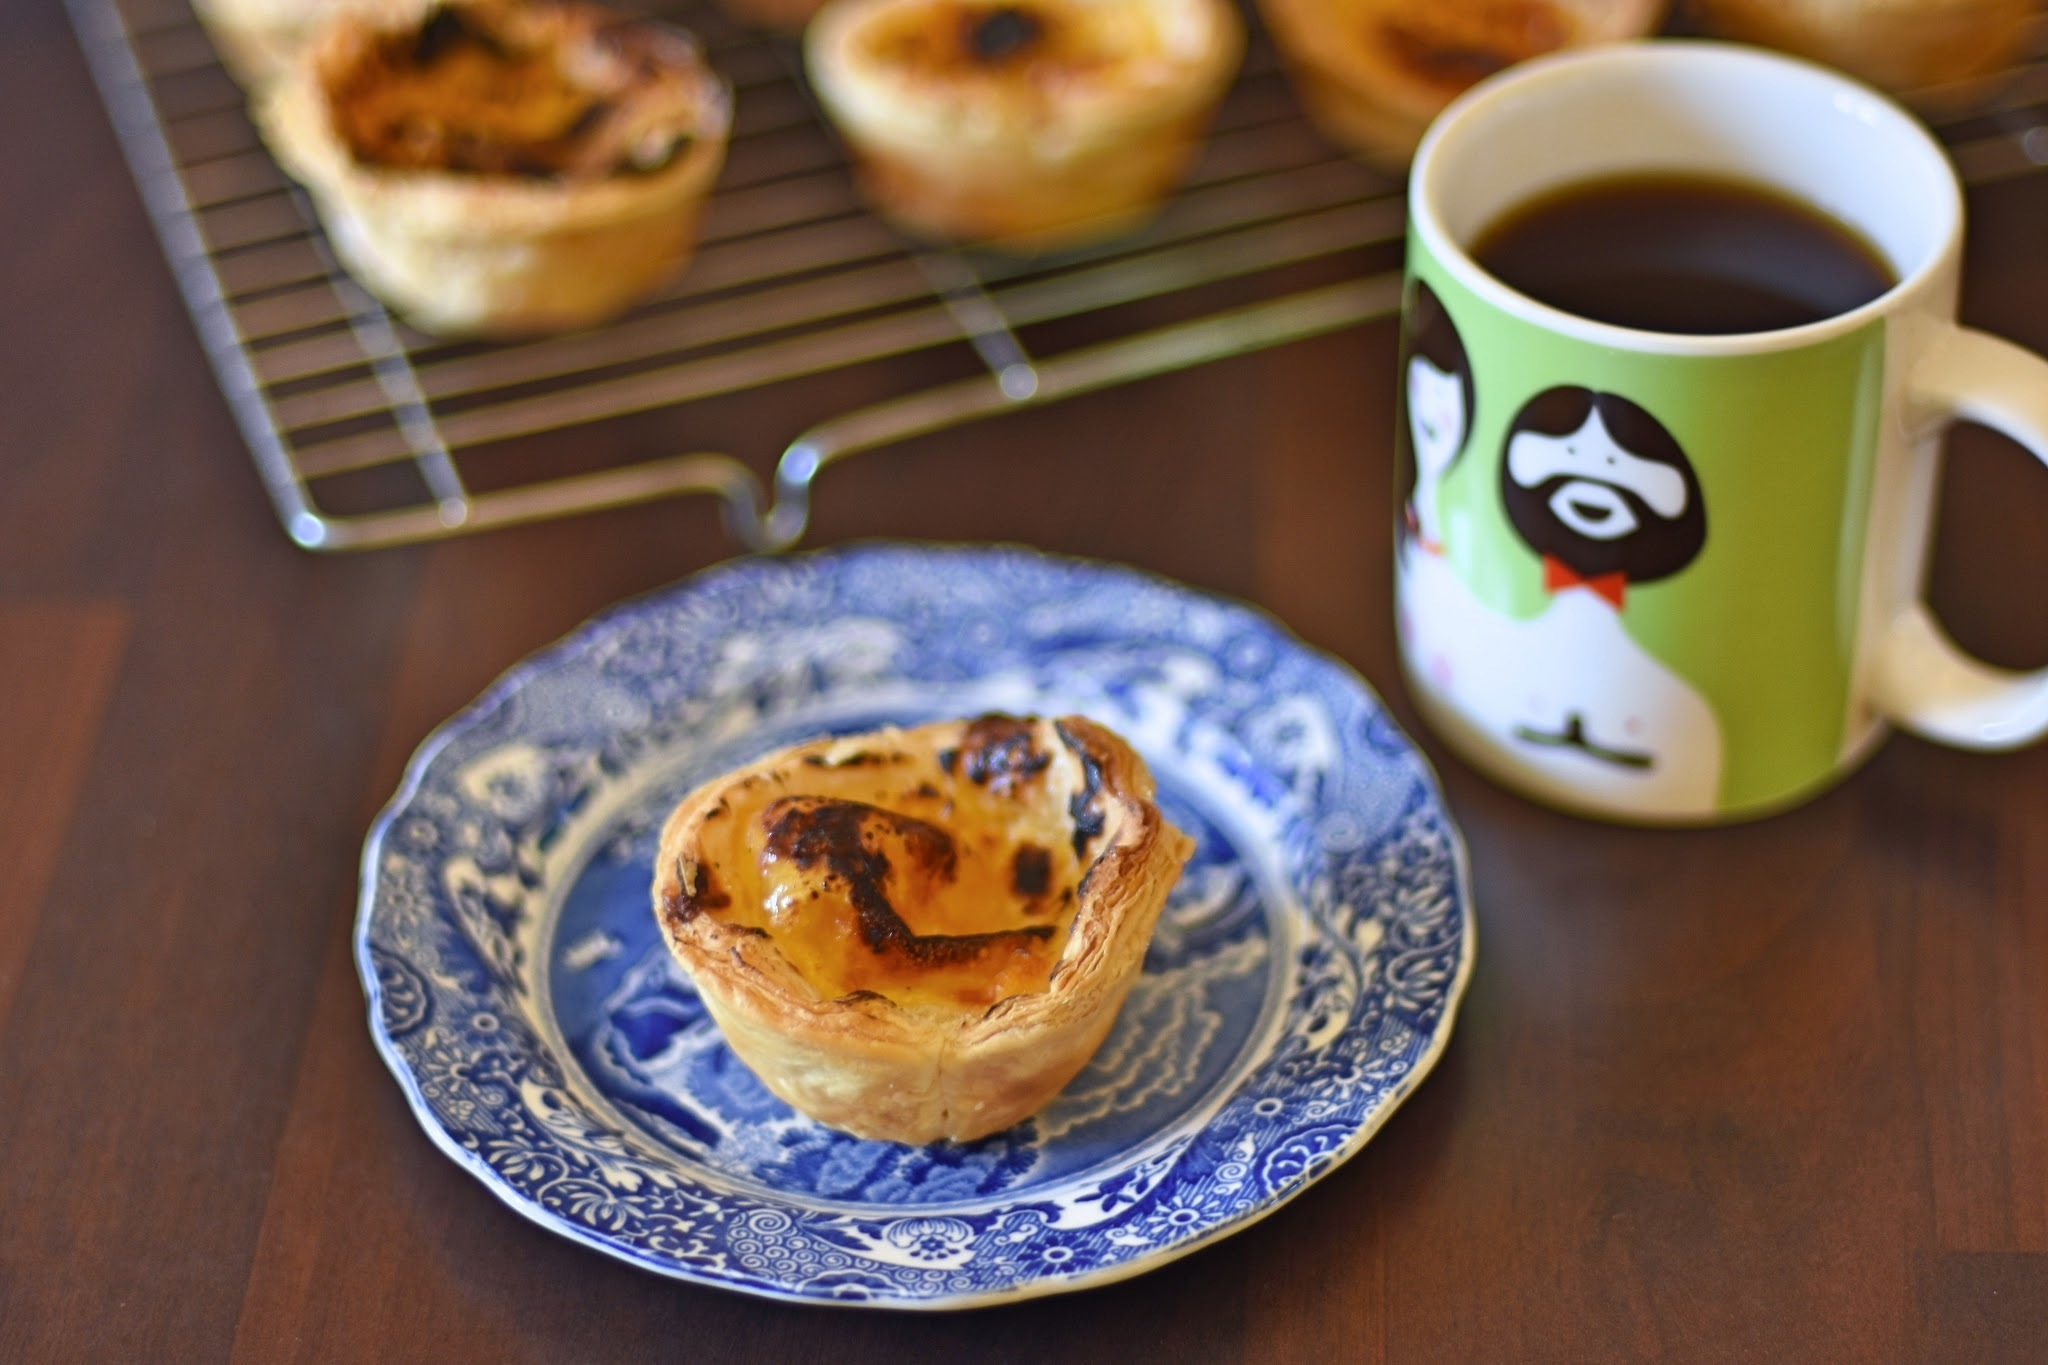 Bake Off Bake Along: Week 6 - Lemon Custard Tarts (Pasteis de Nata)